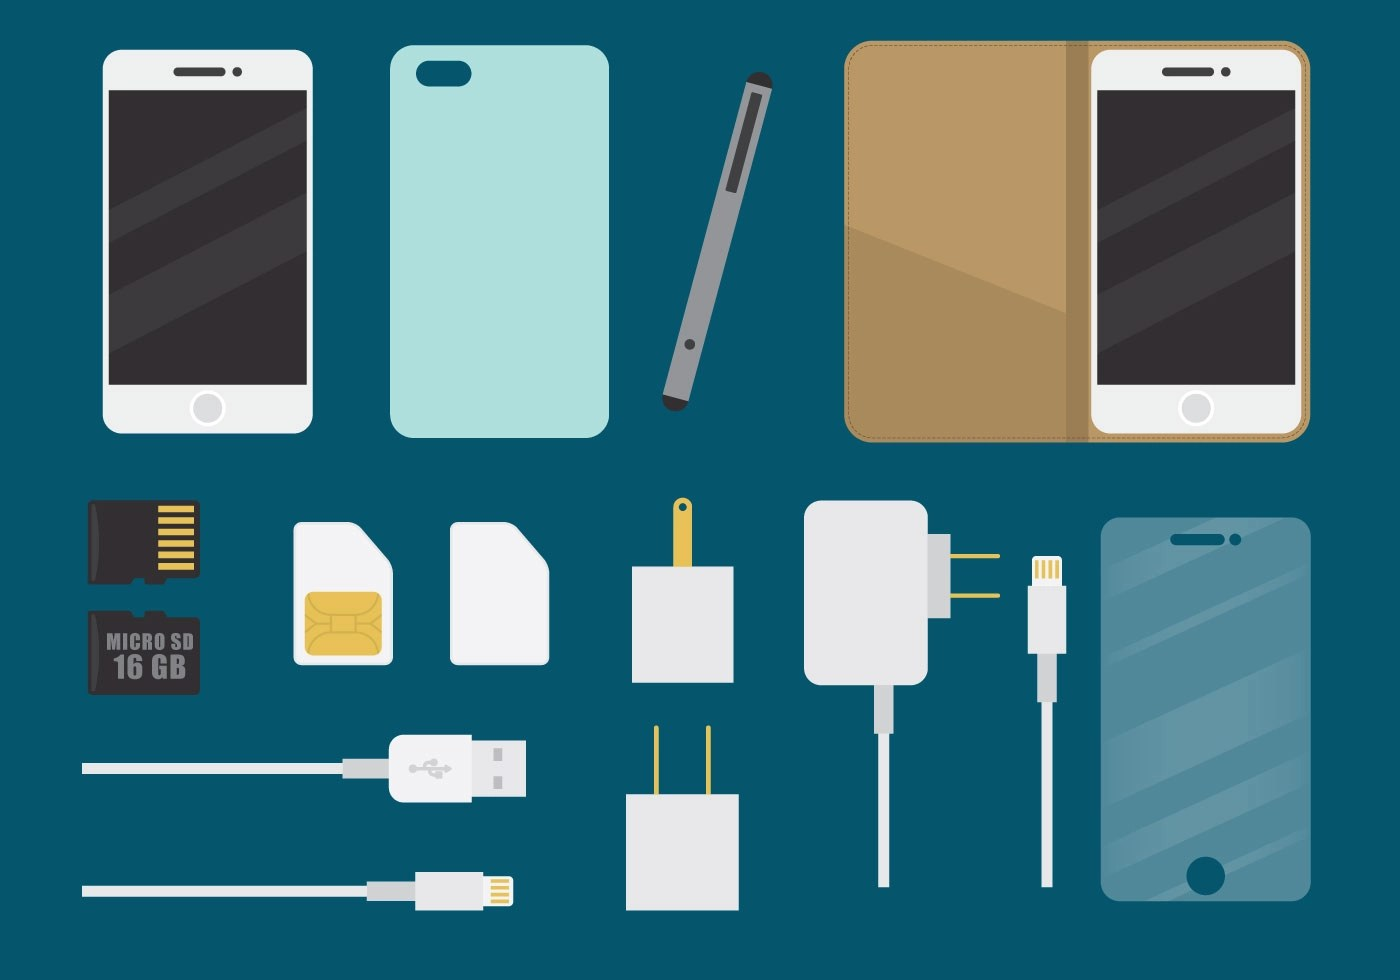 Phone Accessory Phone Accessories Download Free Vector Art Stock Graphics Images